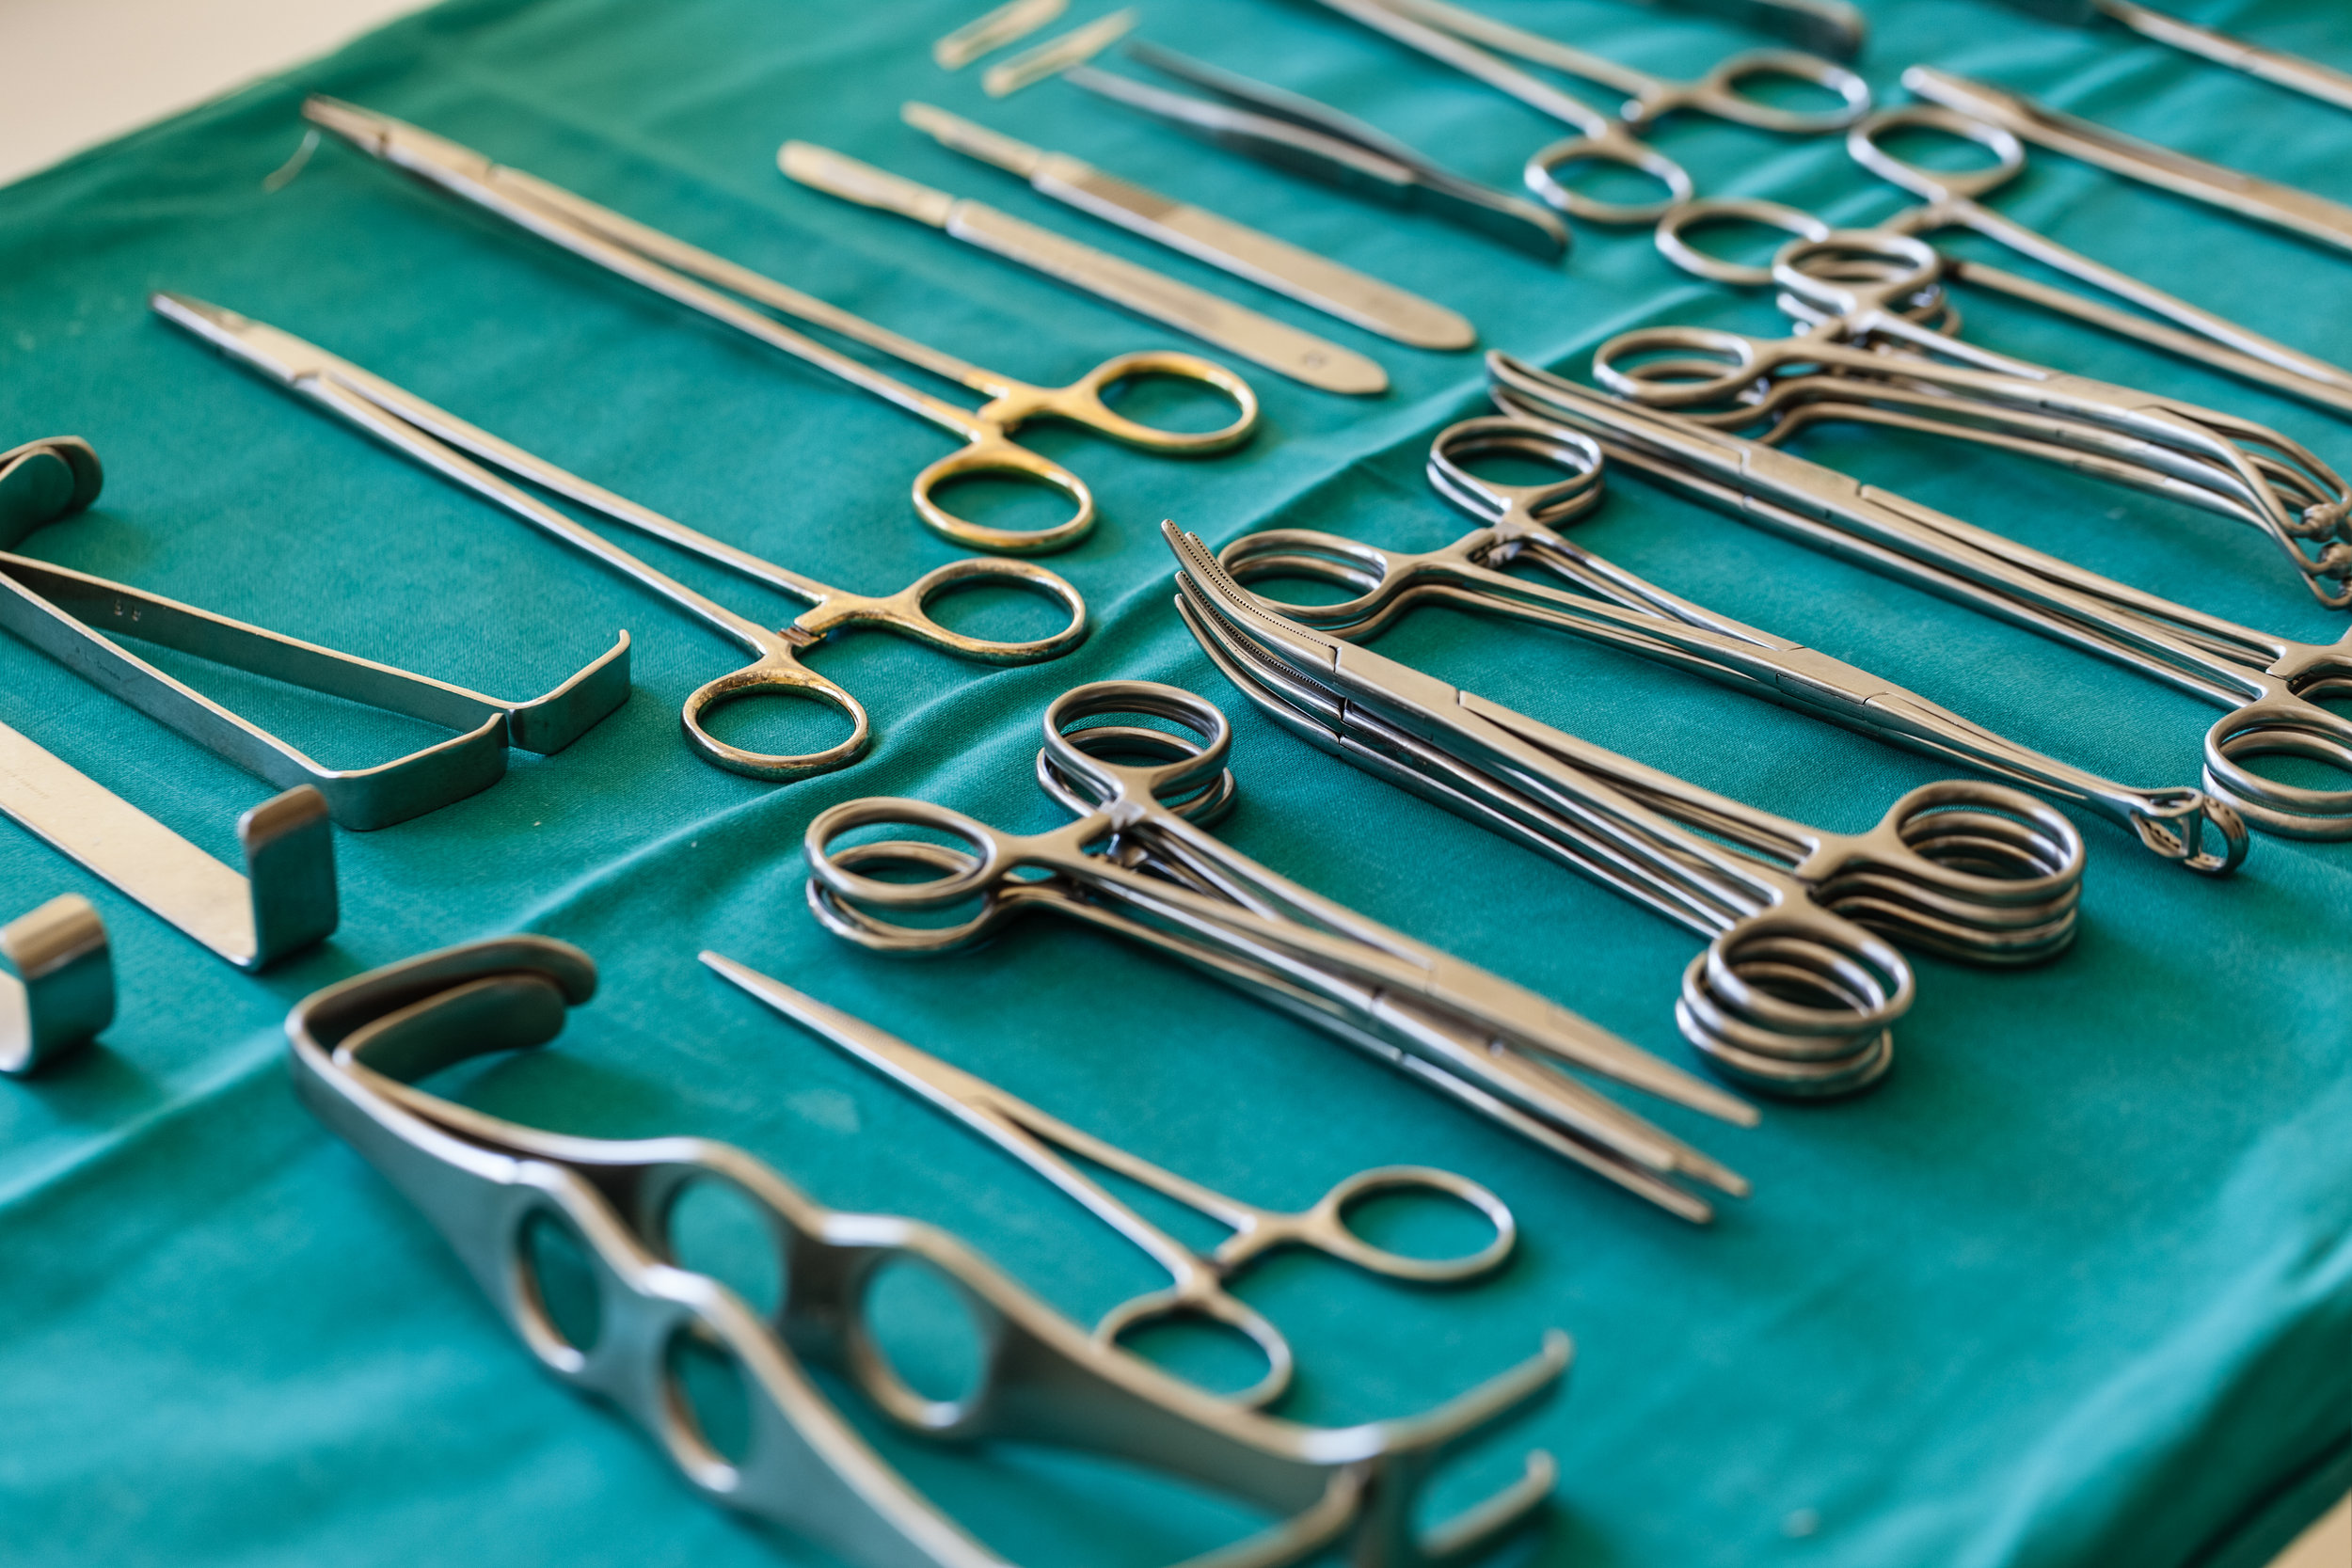 Set-Up-For-Surgery-66697135.jpg